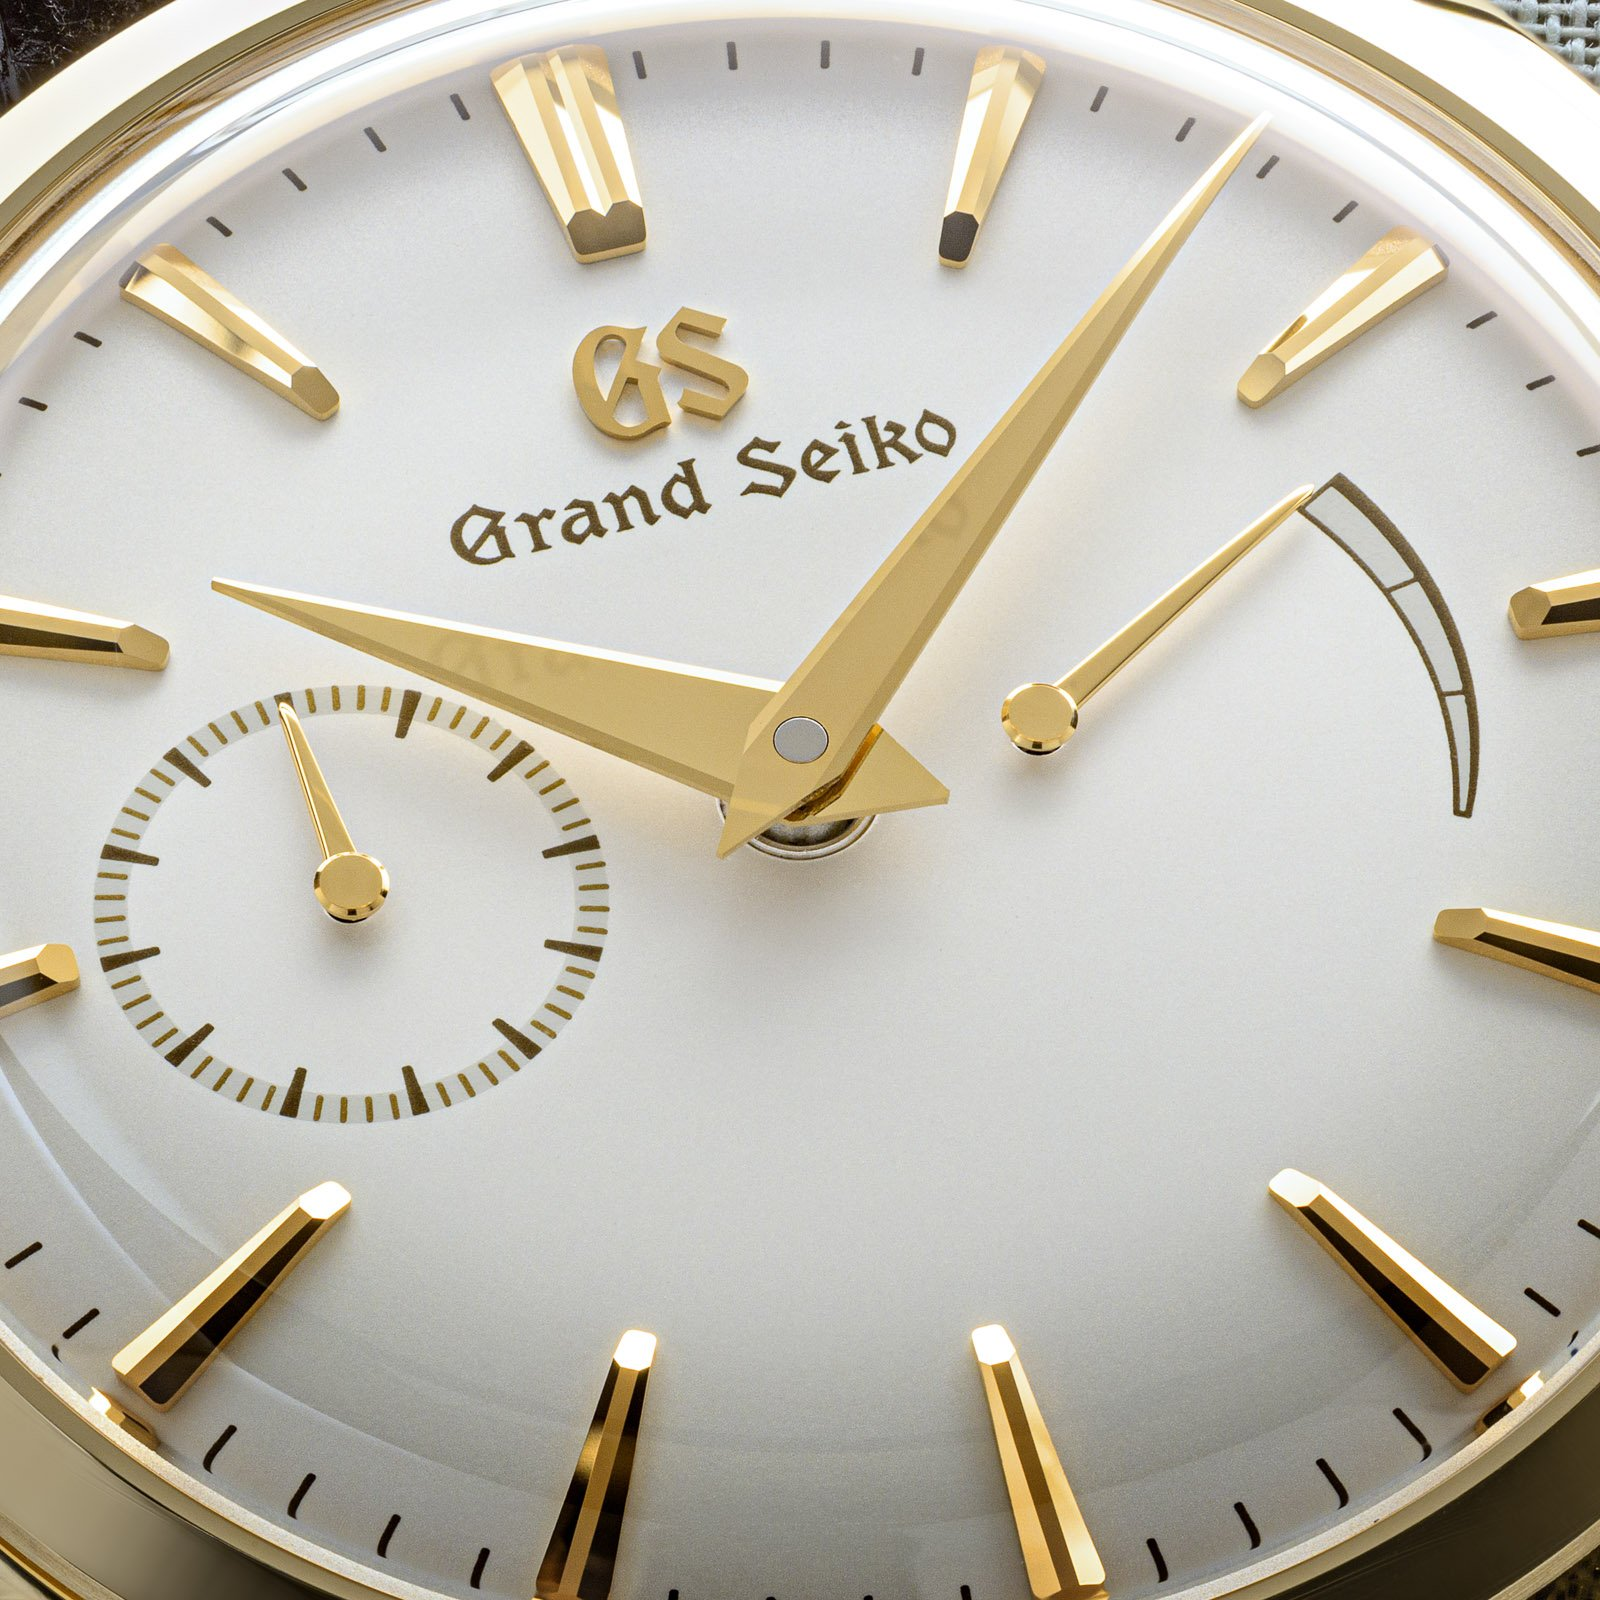 A yellow gold Grand Seiko timepiece with a light dial, and gold-tone hands and indexes.